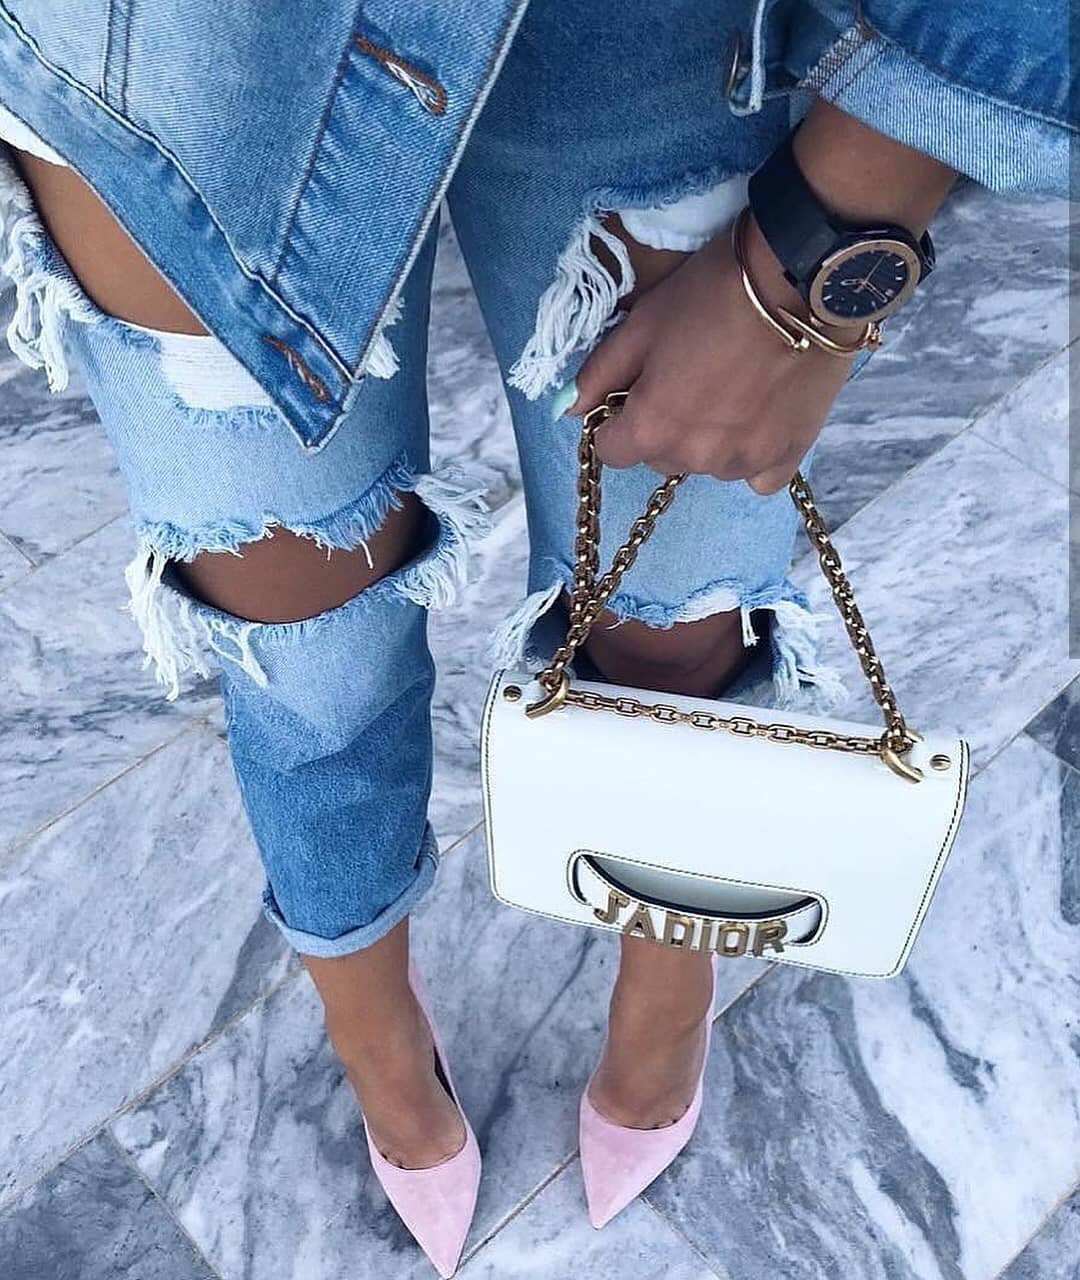 Double Denim Look With Blush Heels And White Clutch Bag For Summer 2019